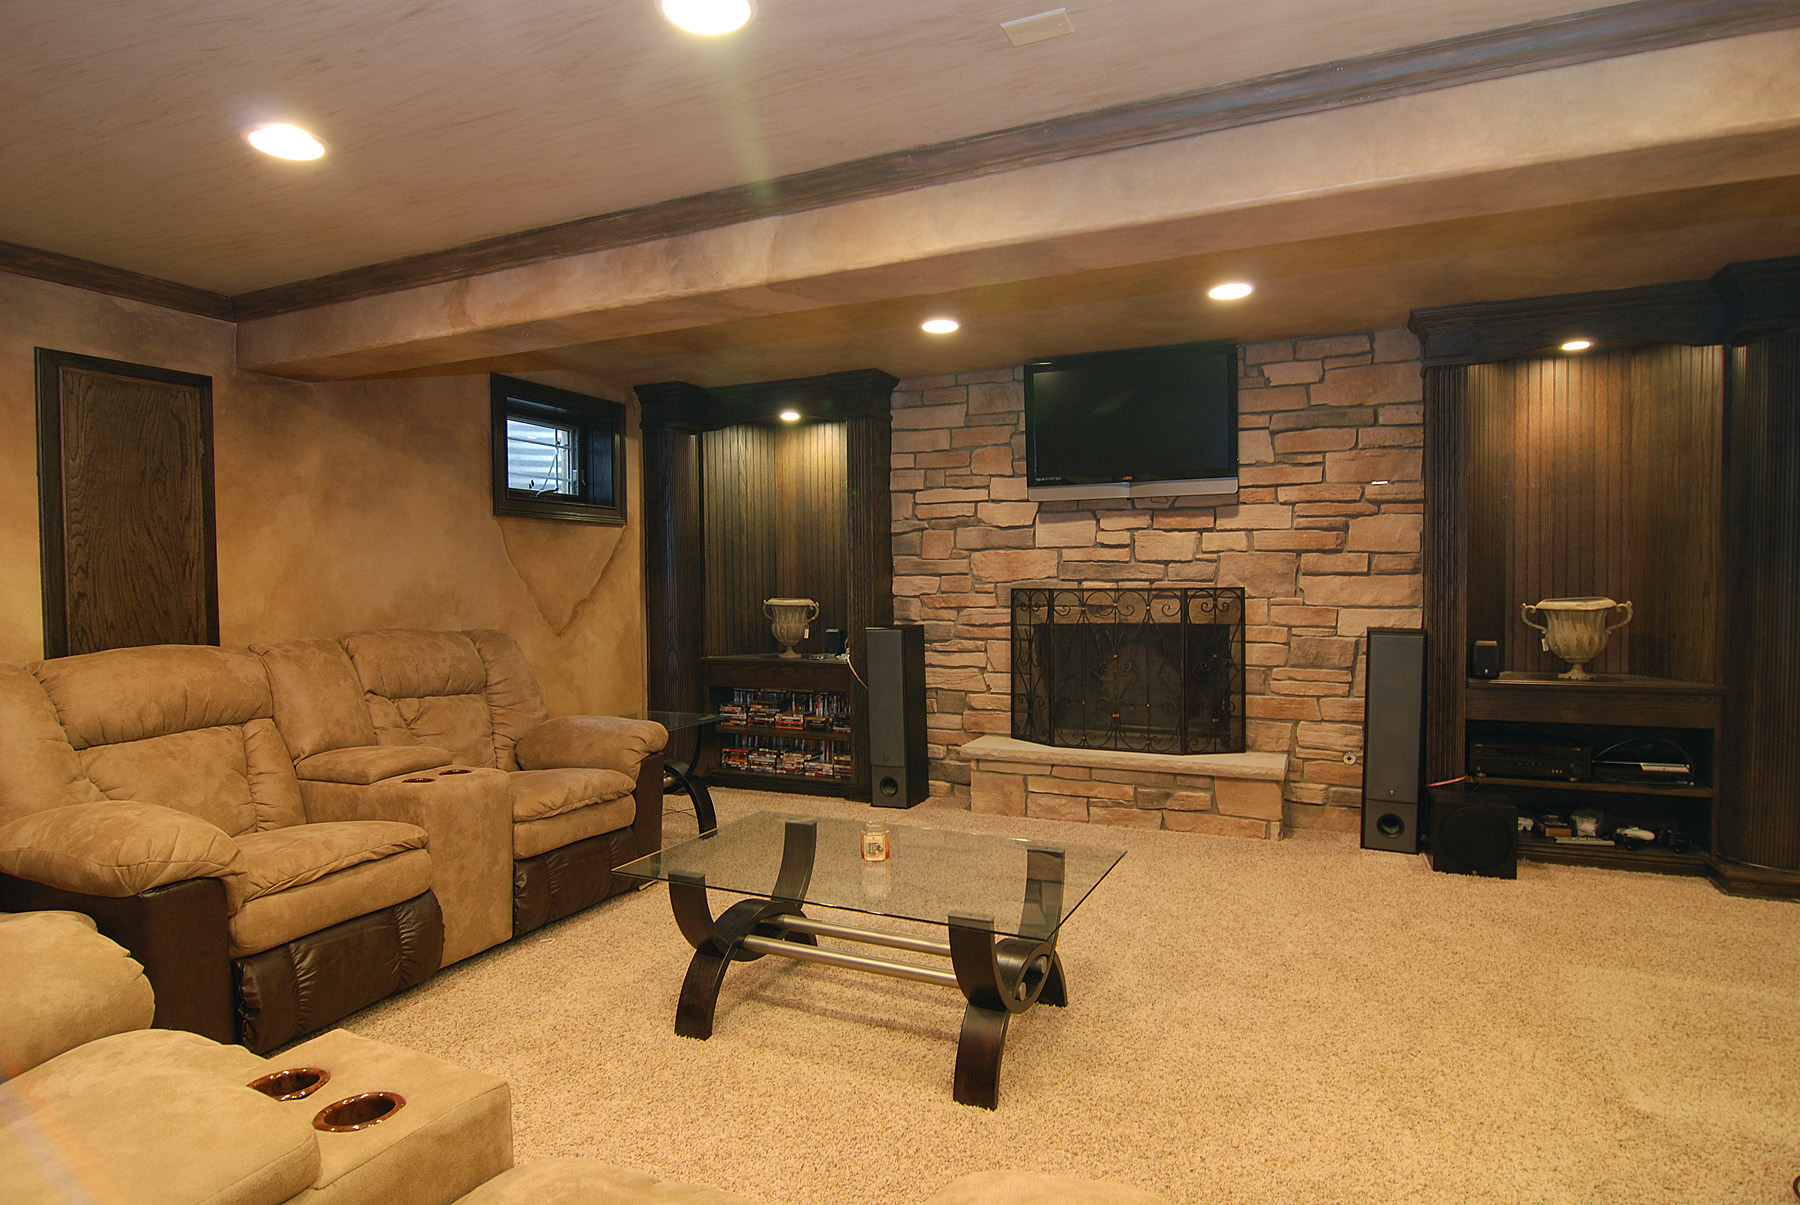 Chicago basement remodeling basement remodel chicago basement finishing homewerks - Basement remodelling ideas ...